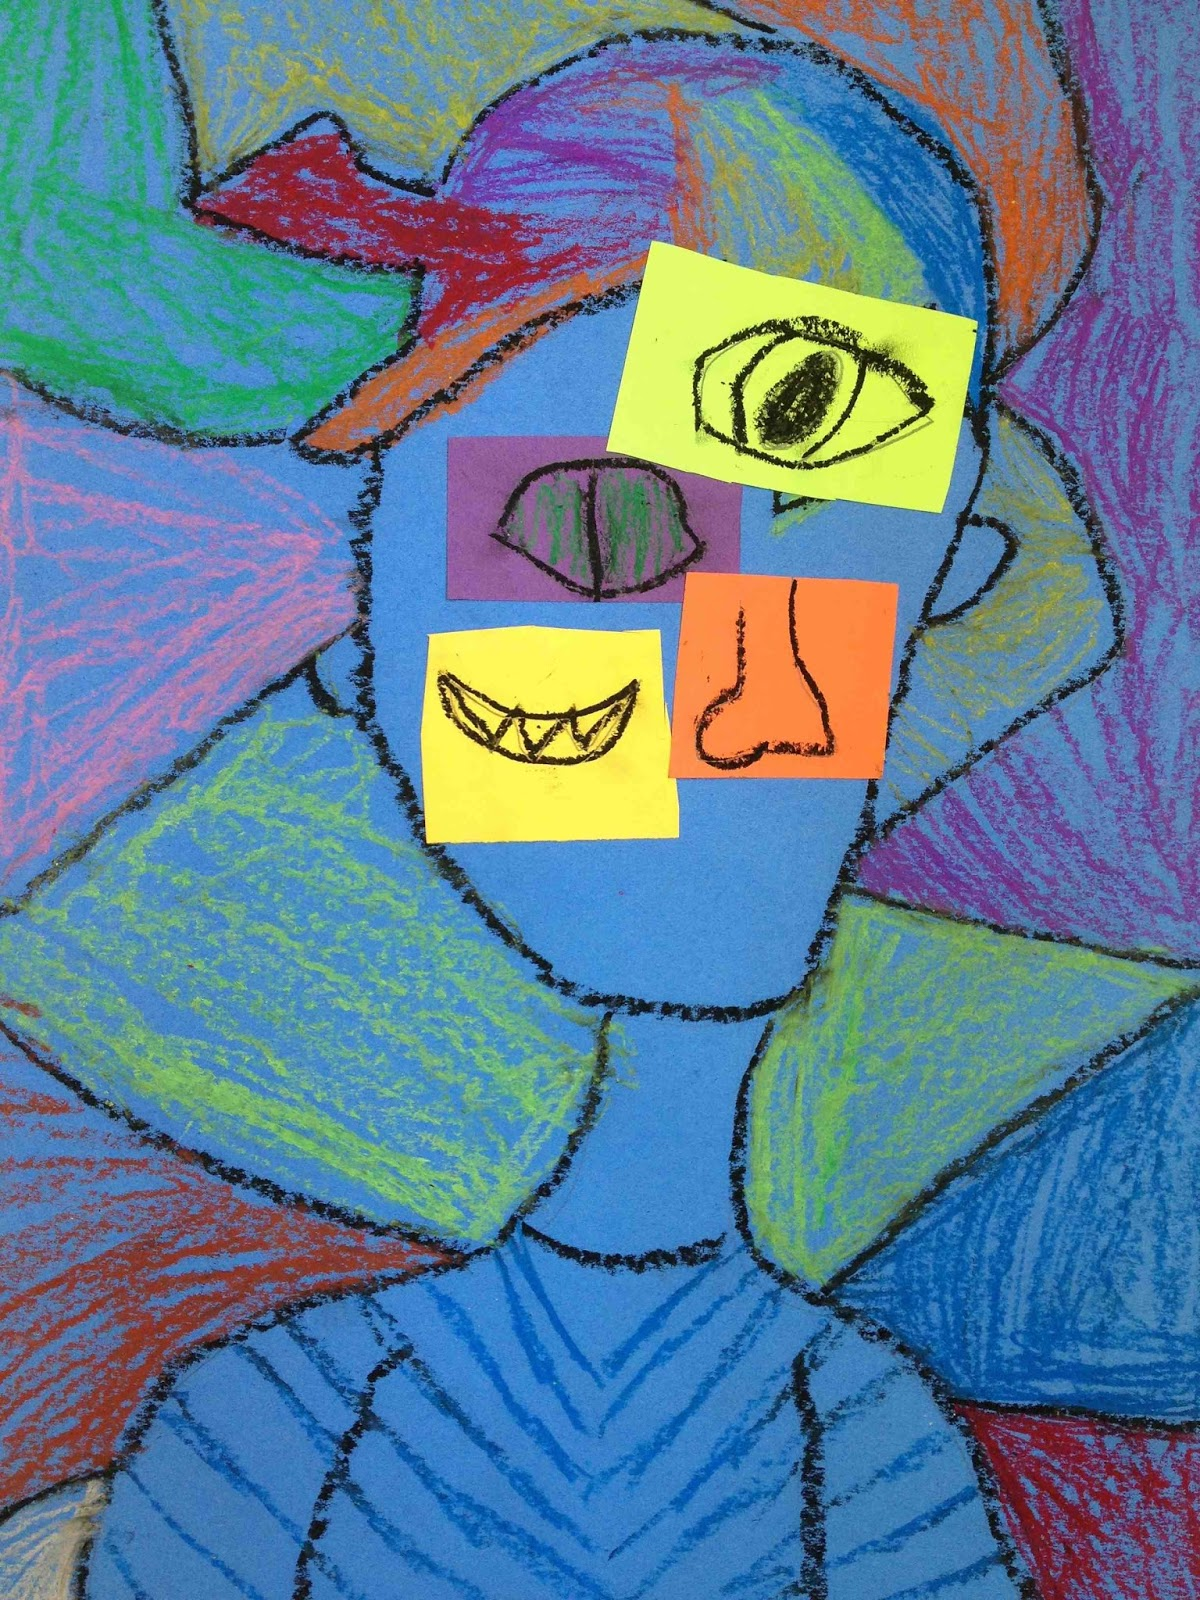 Art At Hosmer Abstract Cubist Self Portraits Inspired By